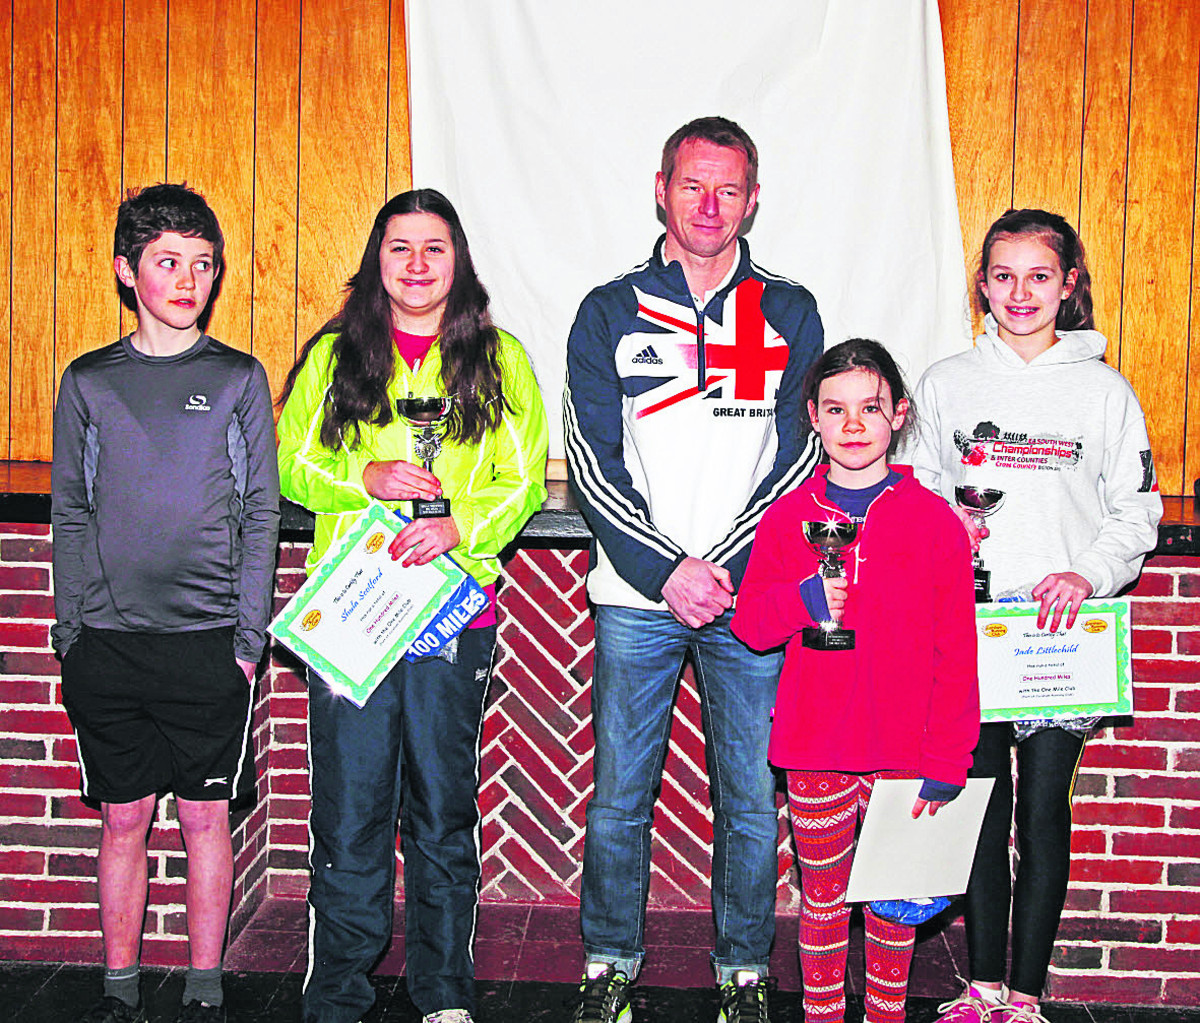 England Athletics coach Martin Rush meets young runners Christopher Sapiano, Shula Scotford, Zoë Stansfield-Cox and Jade Littlechild